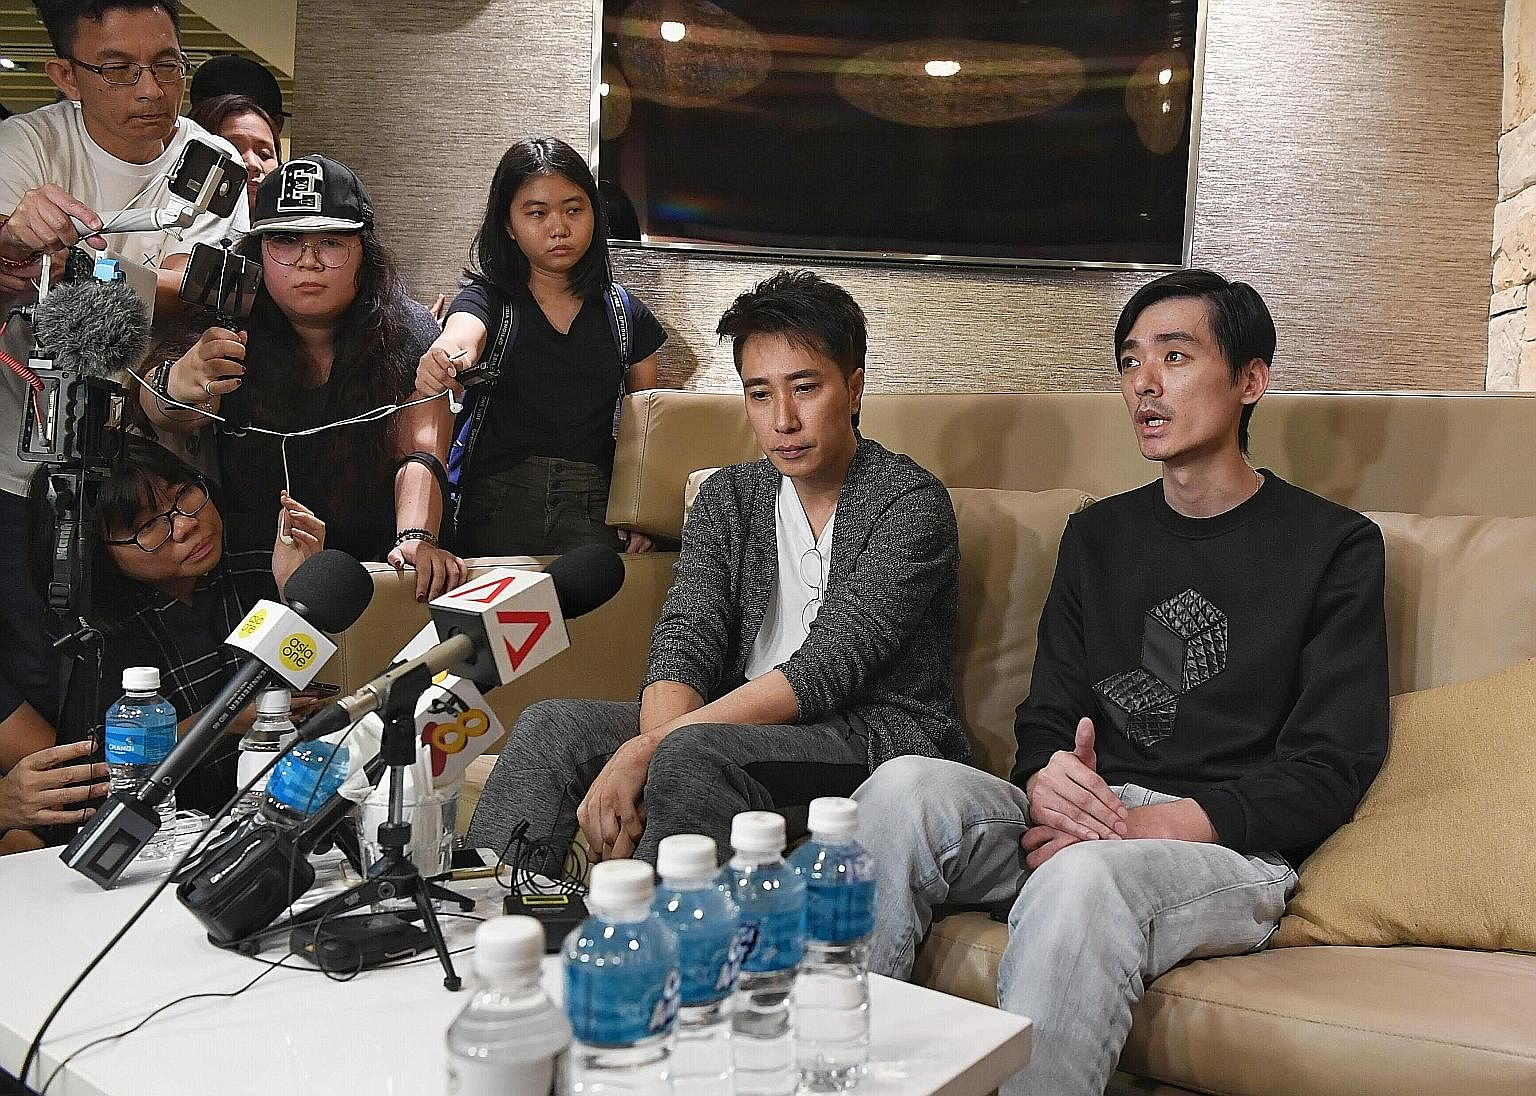 CFC Aloysius Pang was with two other personnel inside a howitzer when he was injured last Saturday. Singaporean actor Aloysius Pang's manager Dasmond Koh (left) and elder brother Kenny Pang speaking to the media at Changi Airport yesterday. Mr Koh sa